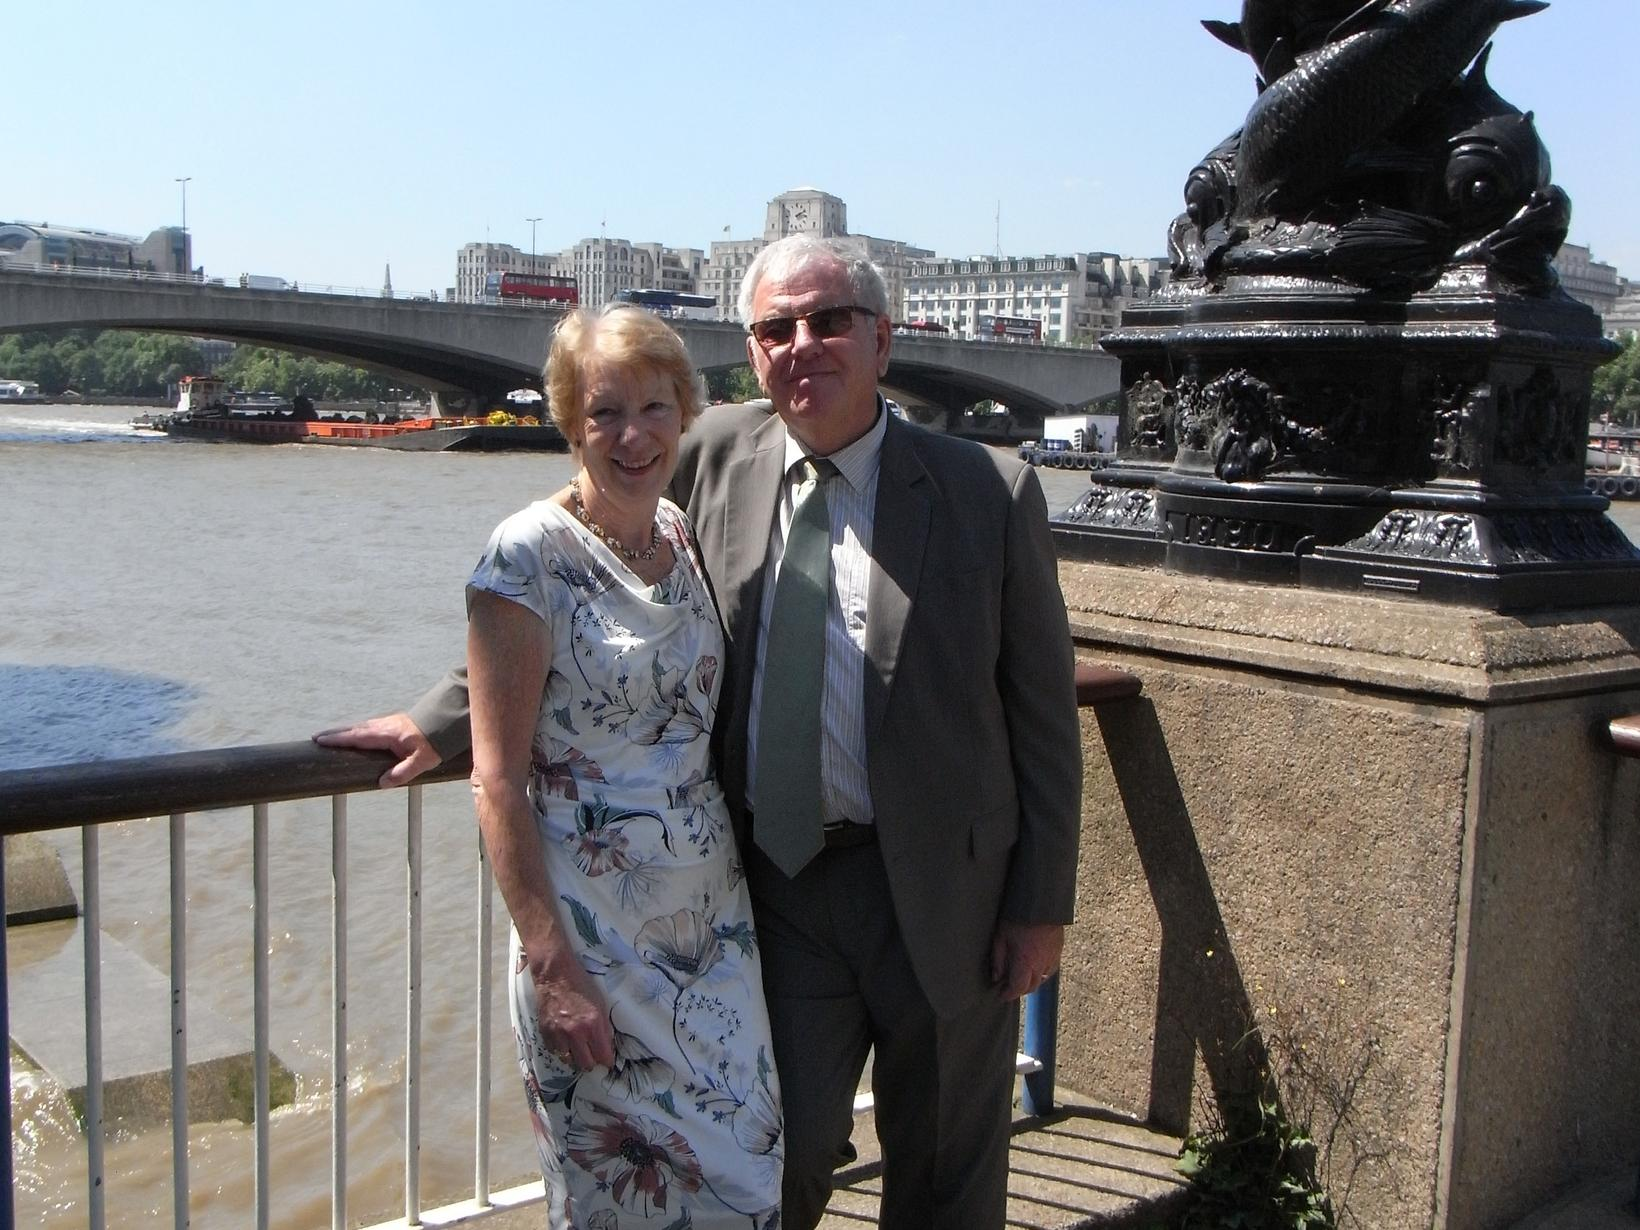 David & Eileen from Taunton, United Kingdom